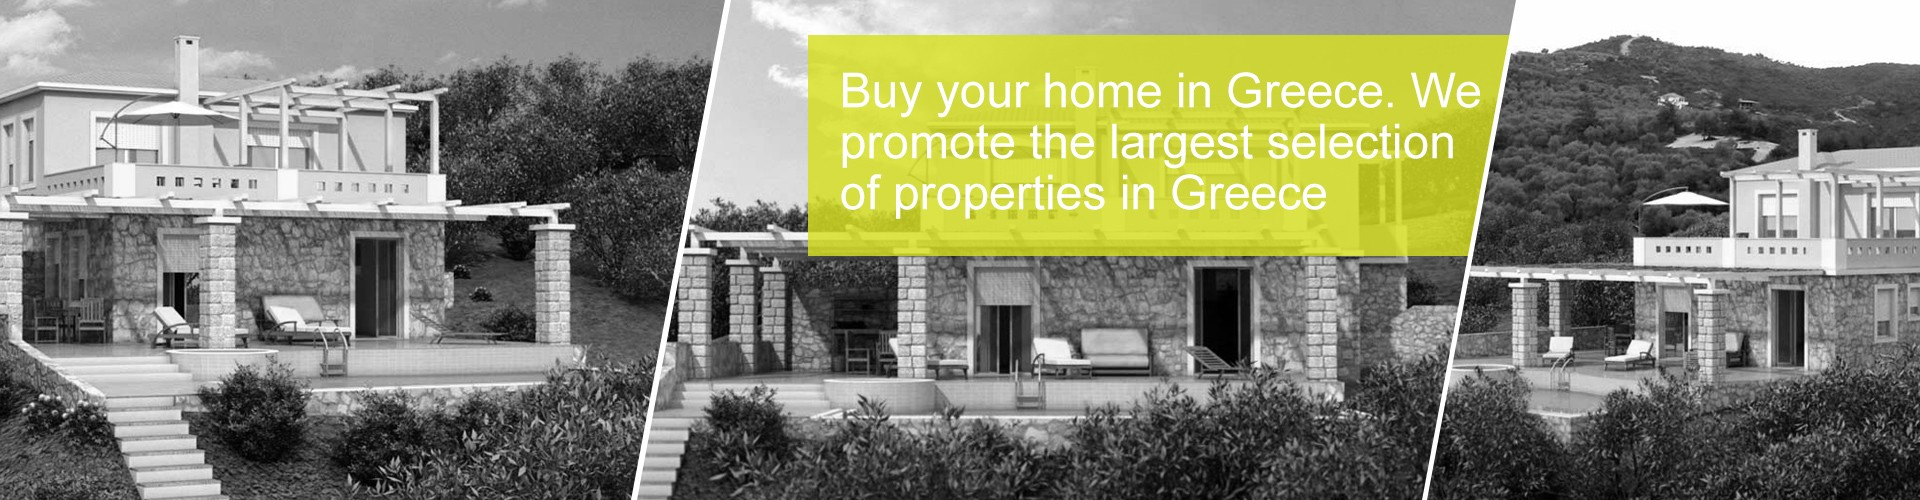 Buy your home in Greece. We promote the largest selection of properties in Greece